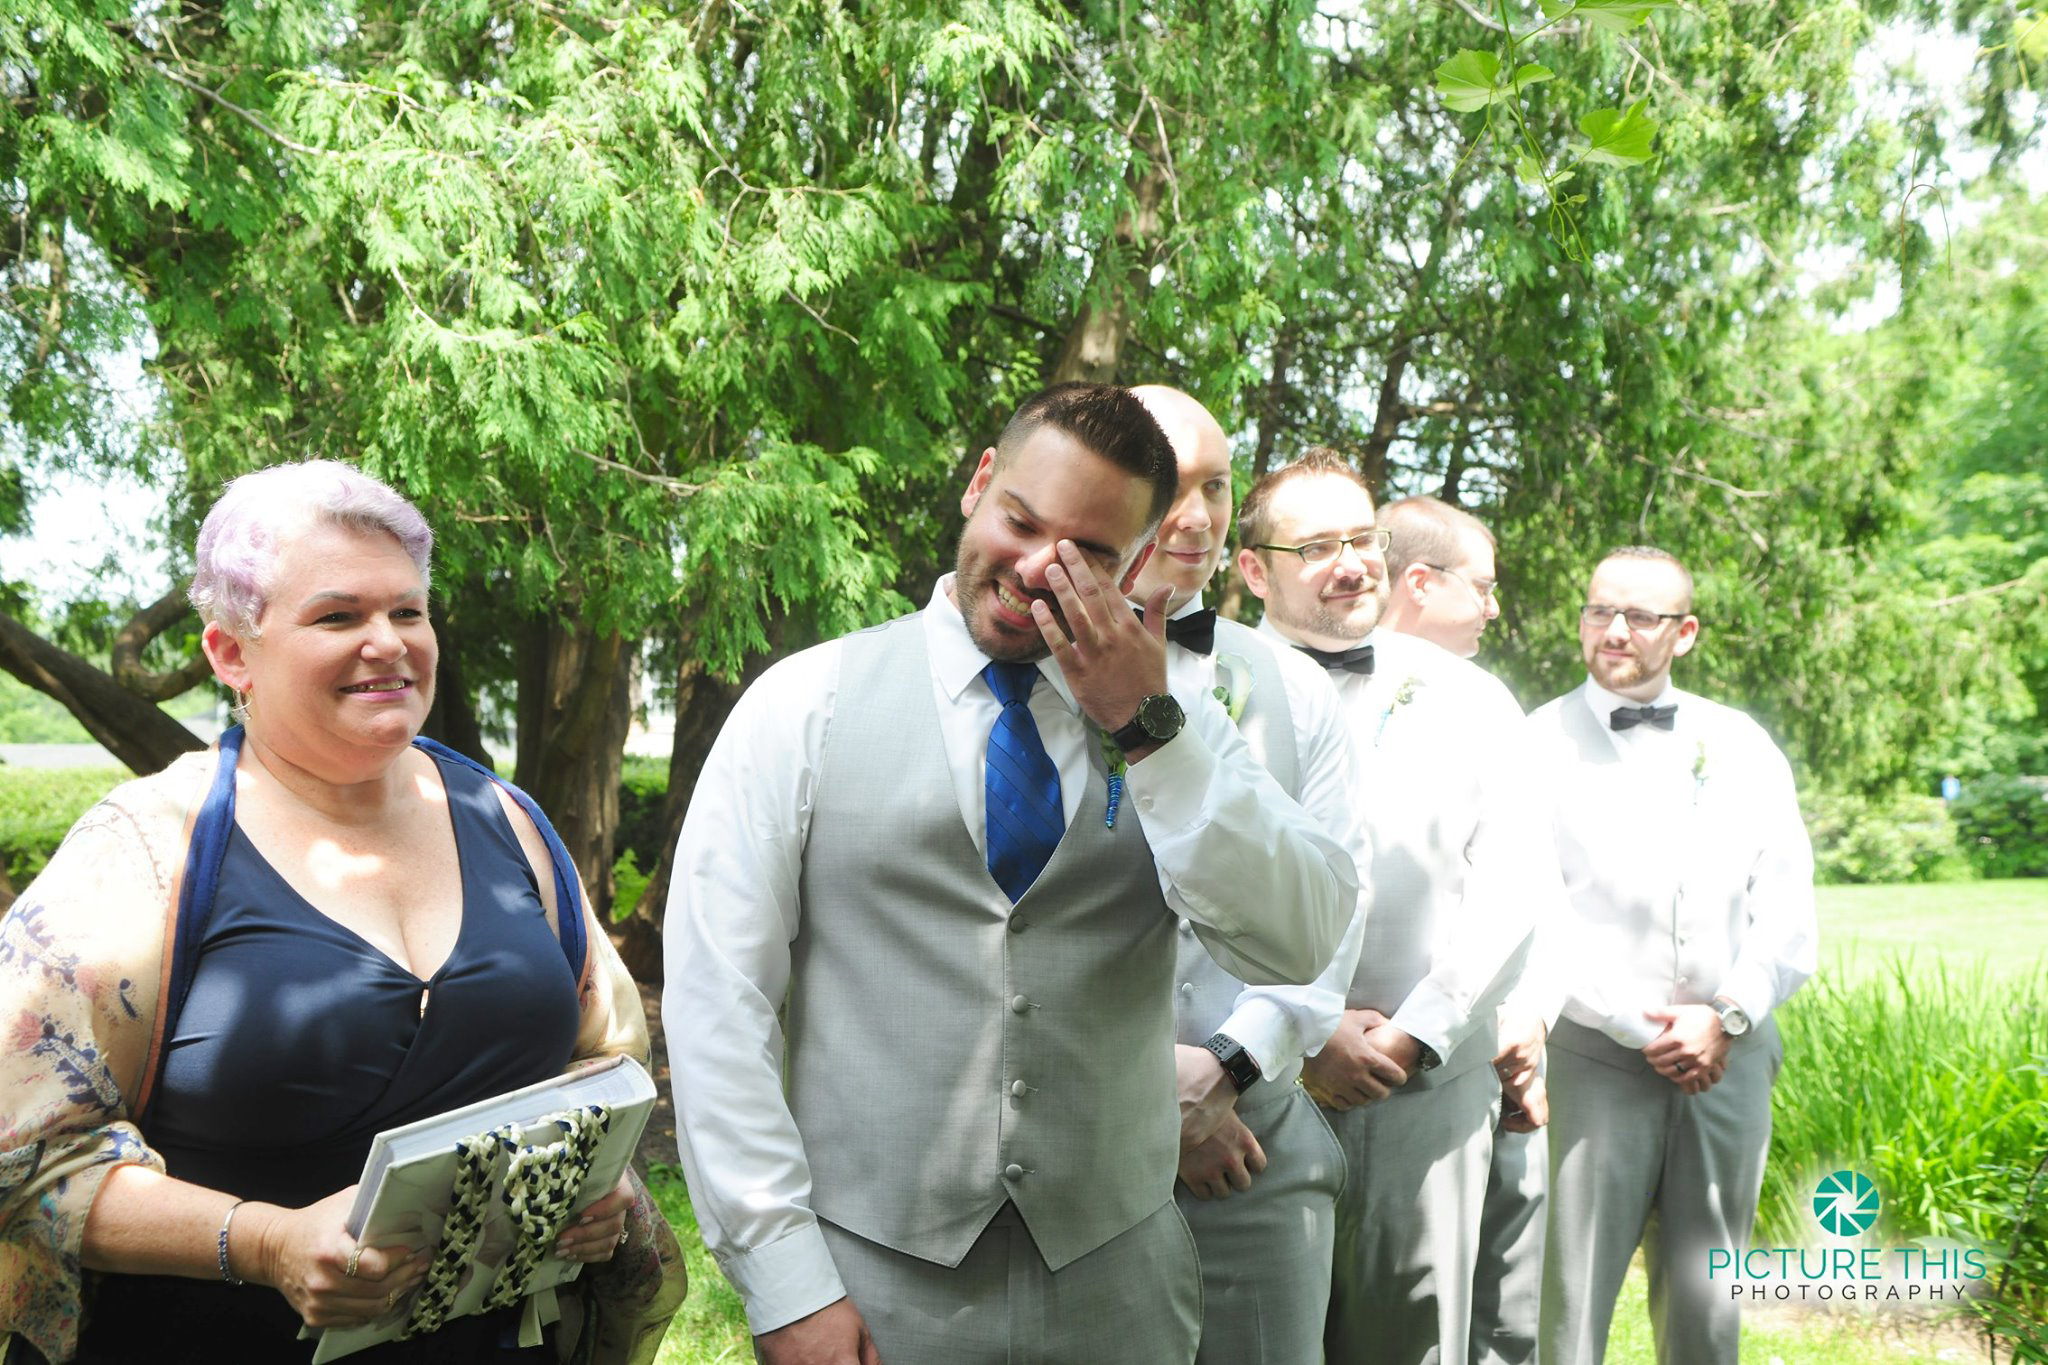 late-june-wedding-ceremony-groom-tears-up-at-sight-of-bride